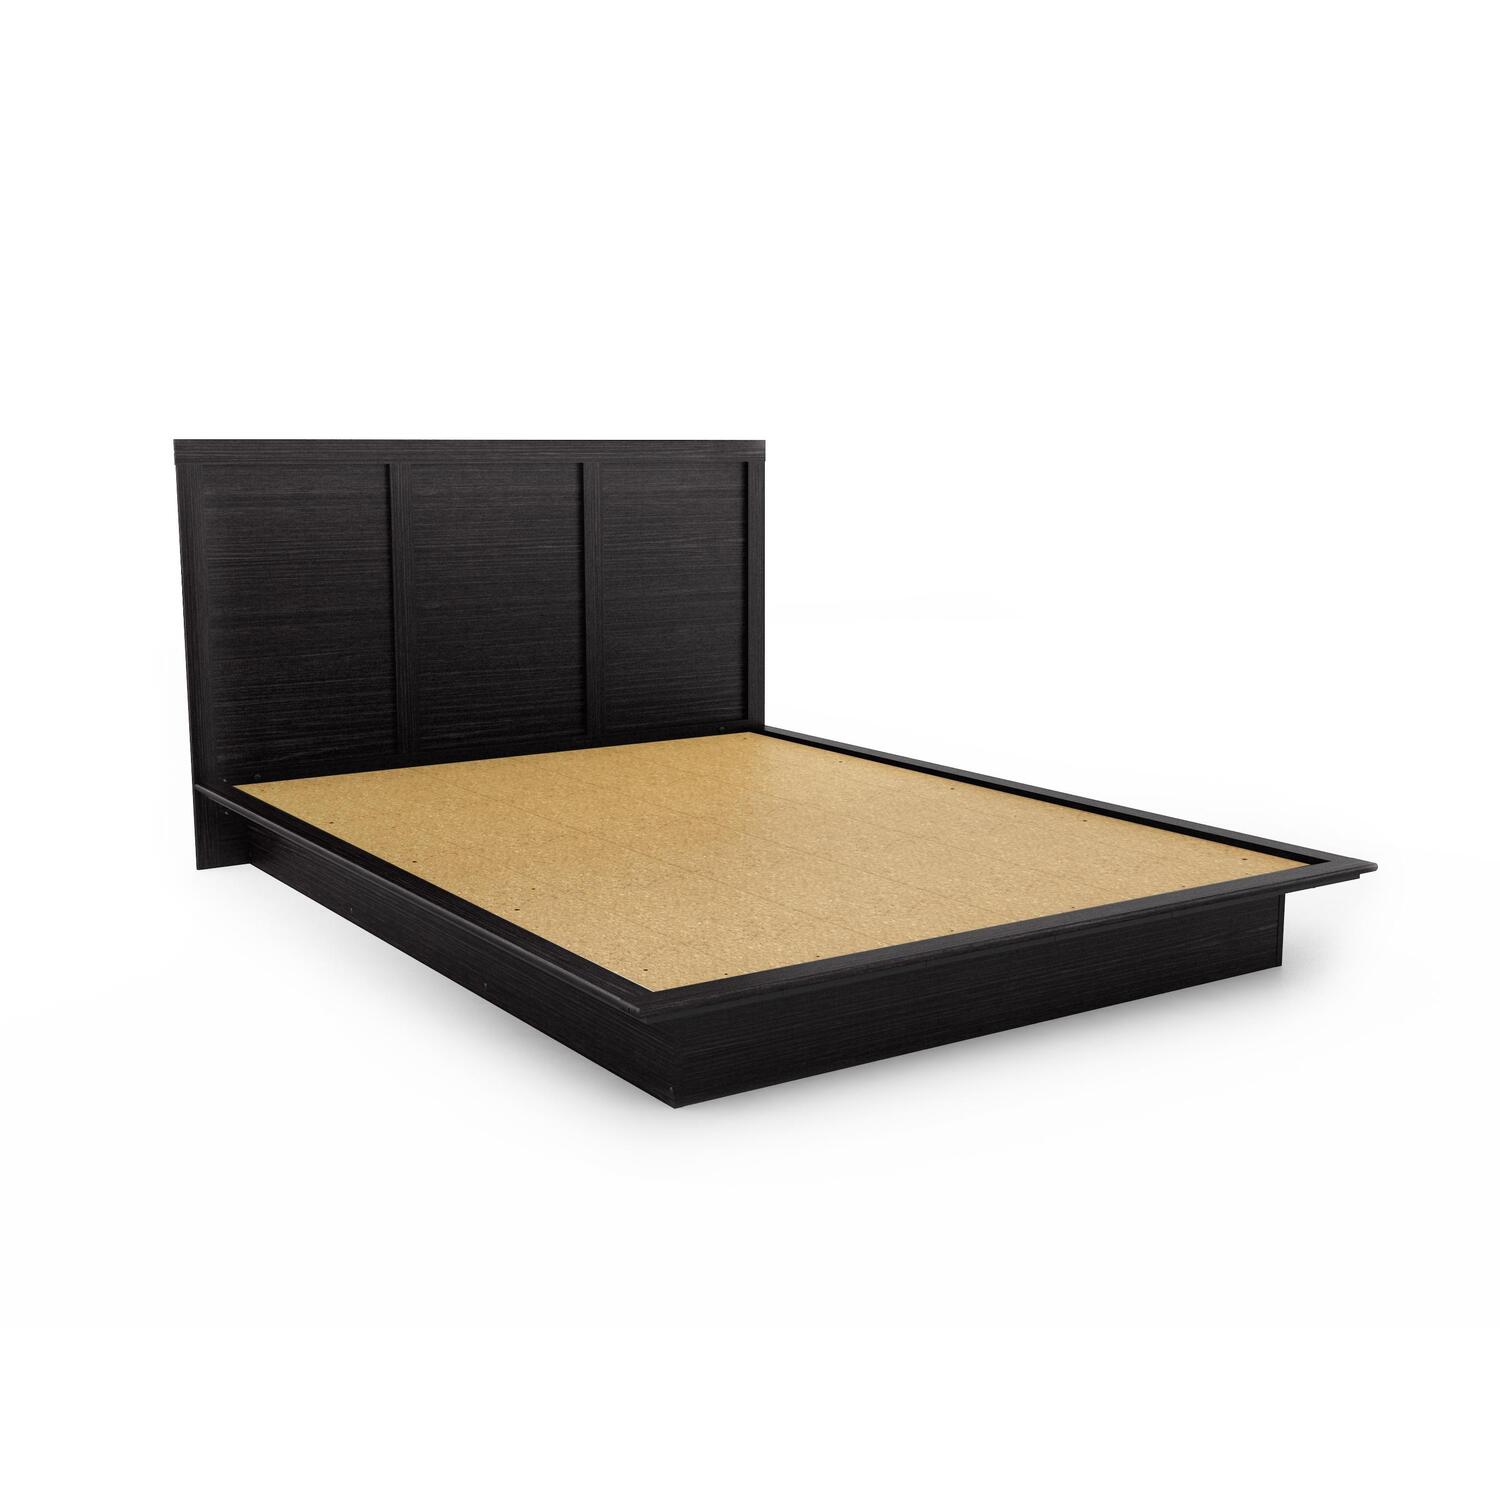 Permalink to free instructions on how to build a platform bed